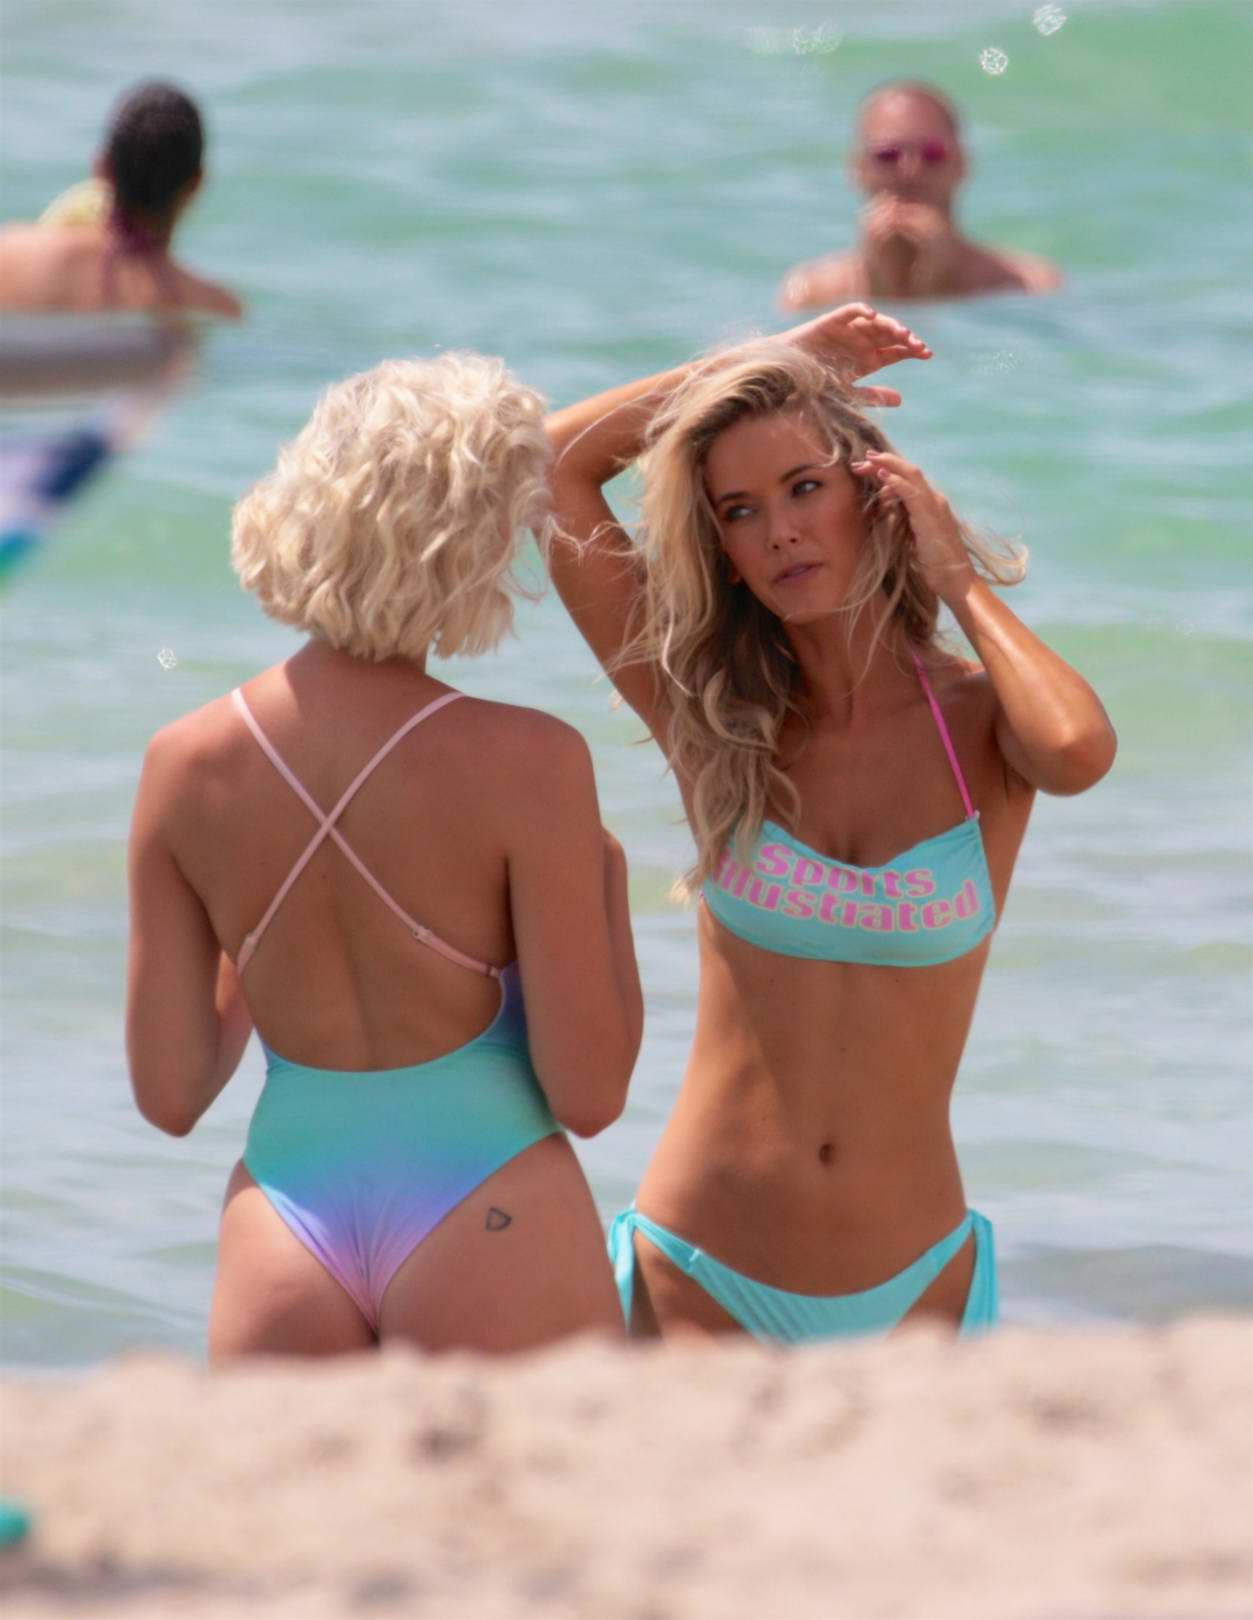 Olivia Jordan in a Bikini spotted at a Photoshoot for Sports Illustrated in Miami